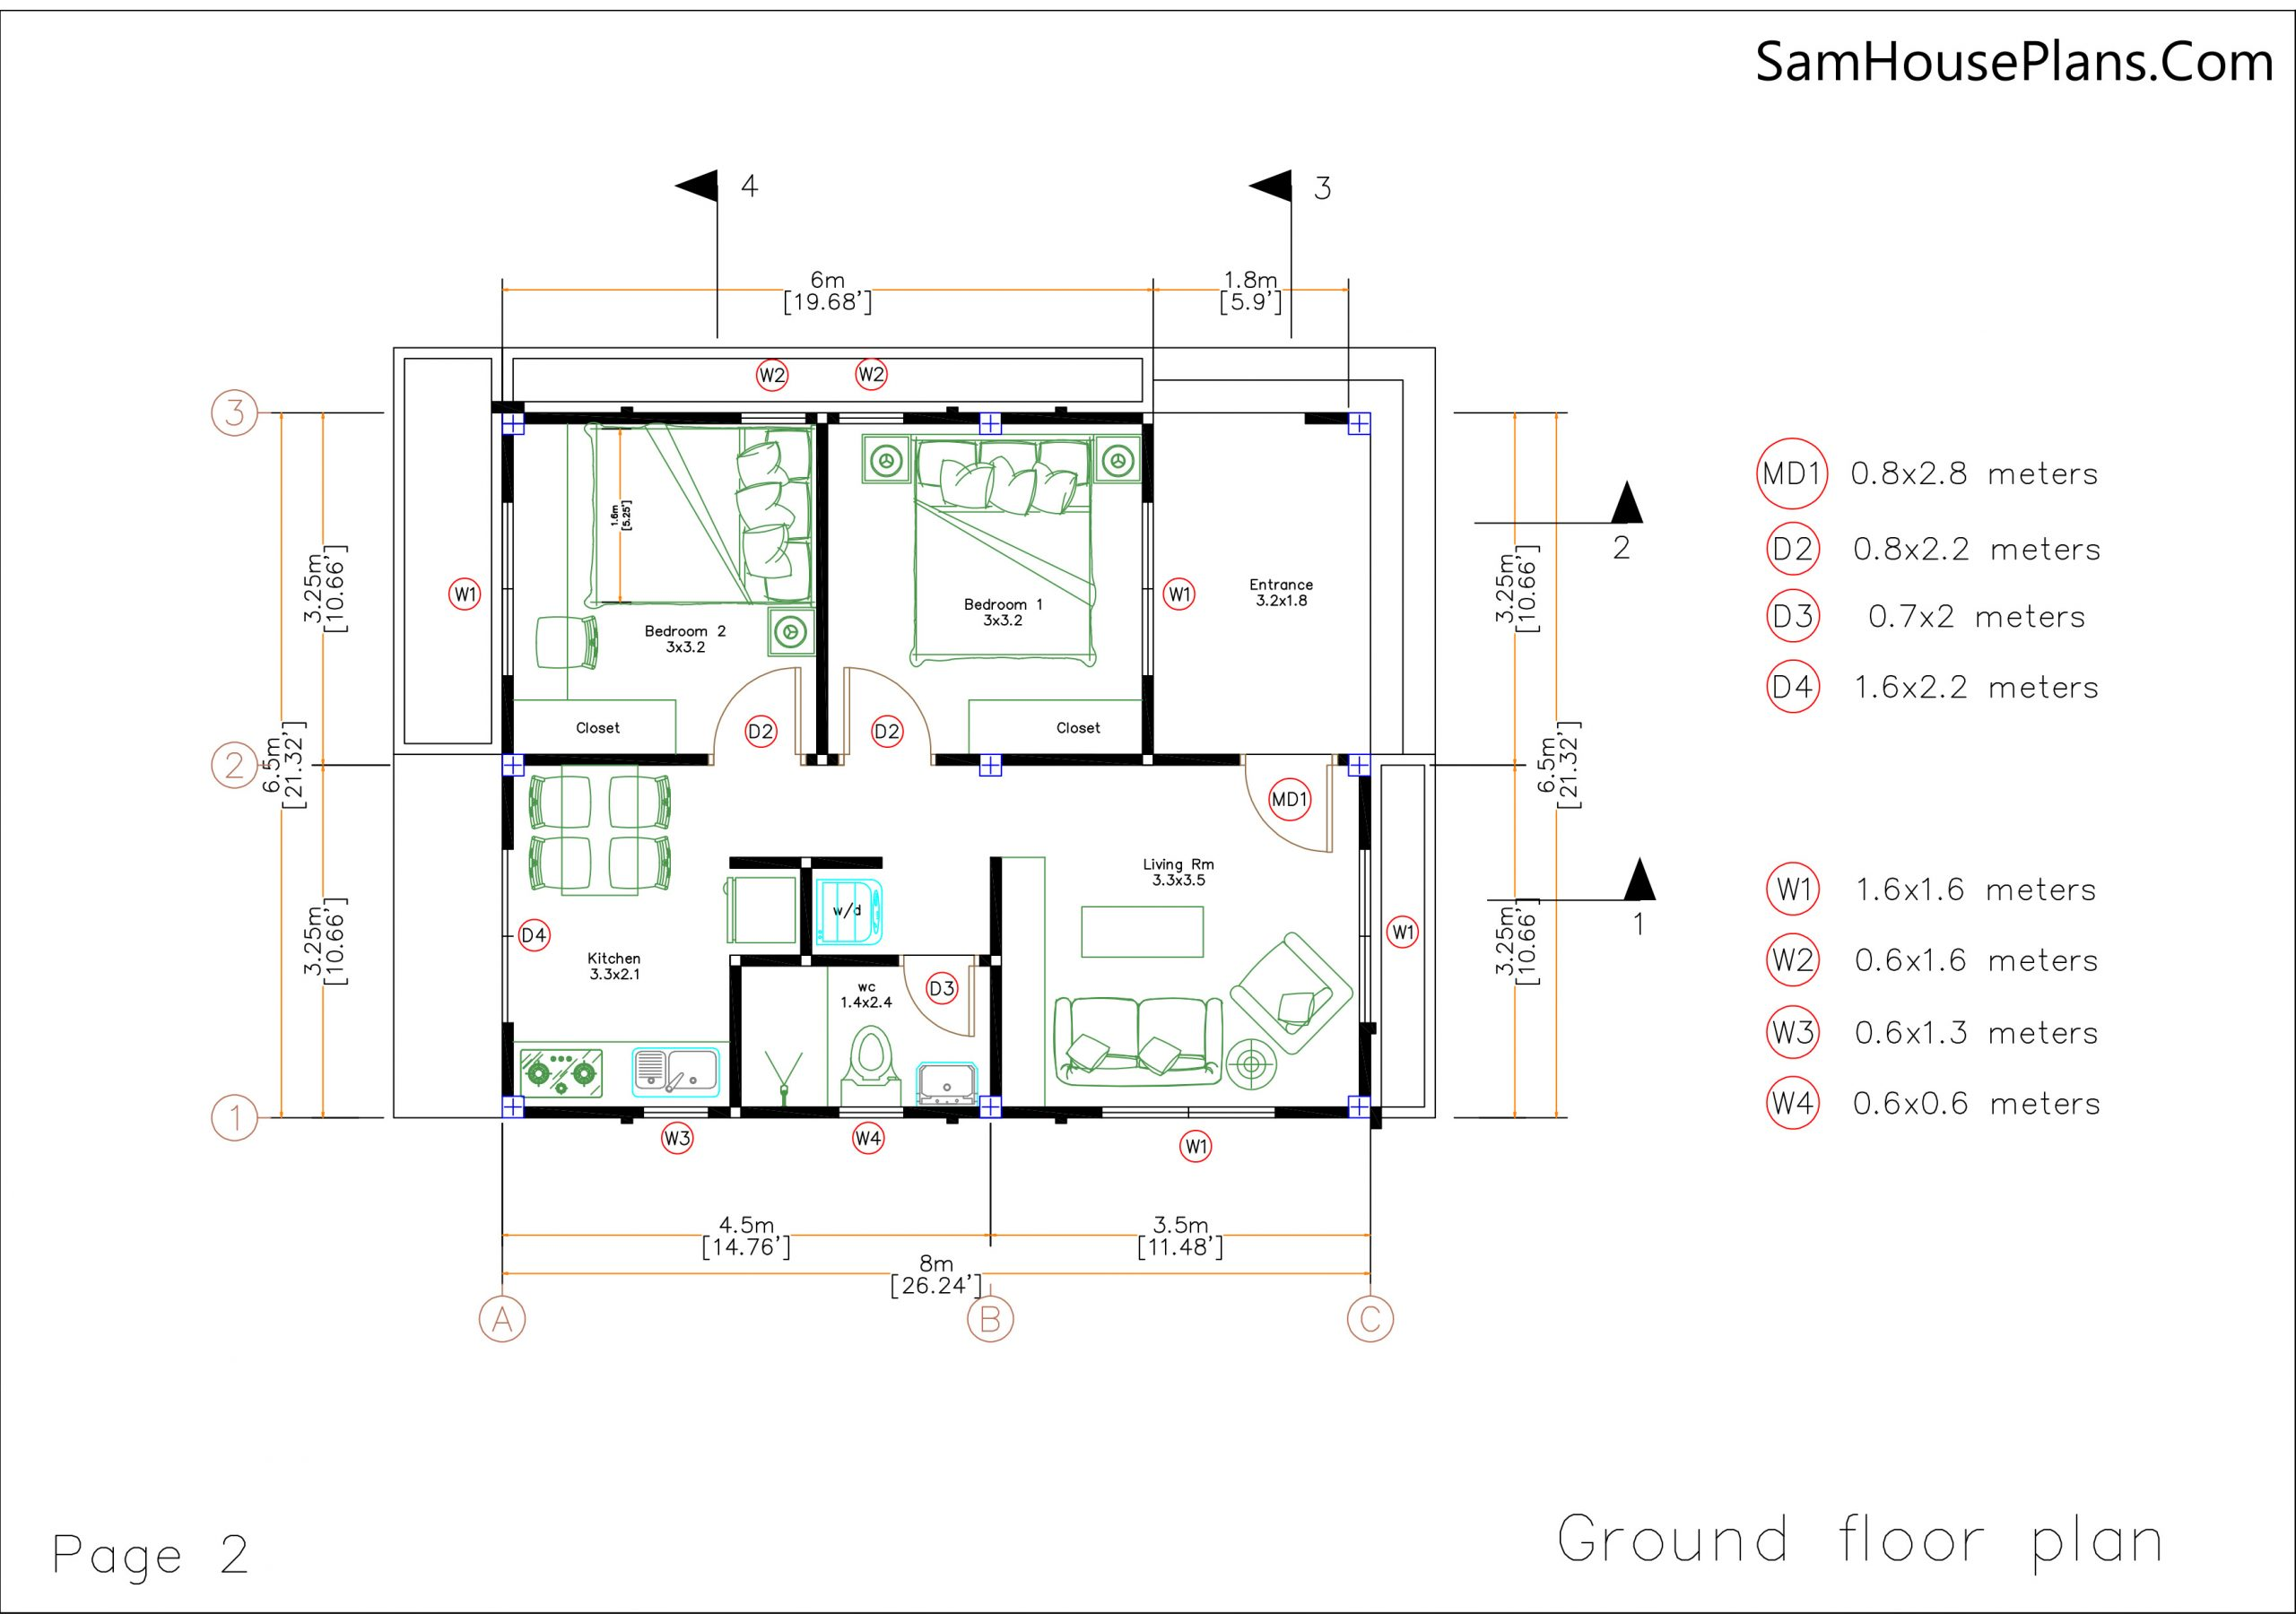 Small House Plans 6.5x8 with 2 Bedrooms Shed Roof ground floor plan